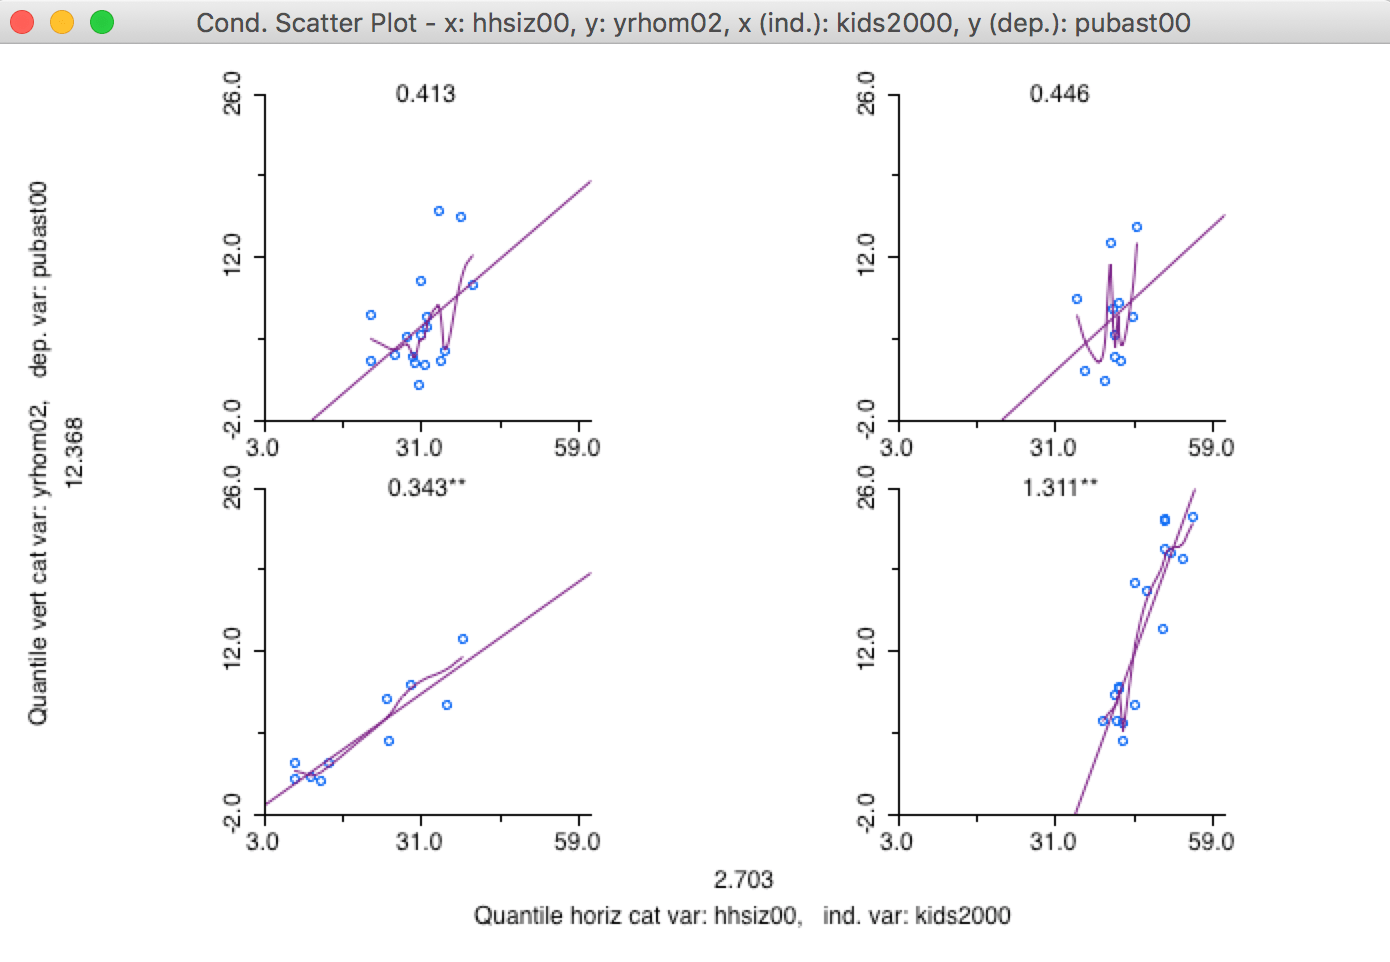 hight resolution of lowess smooth of the conditional scatter plot